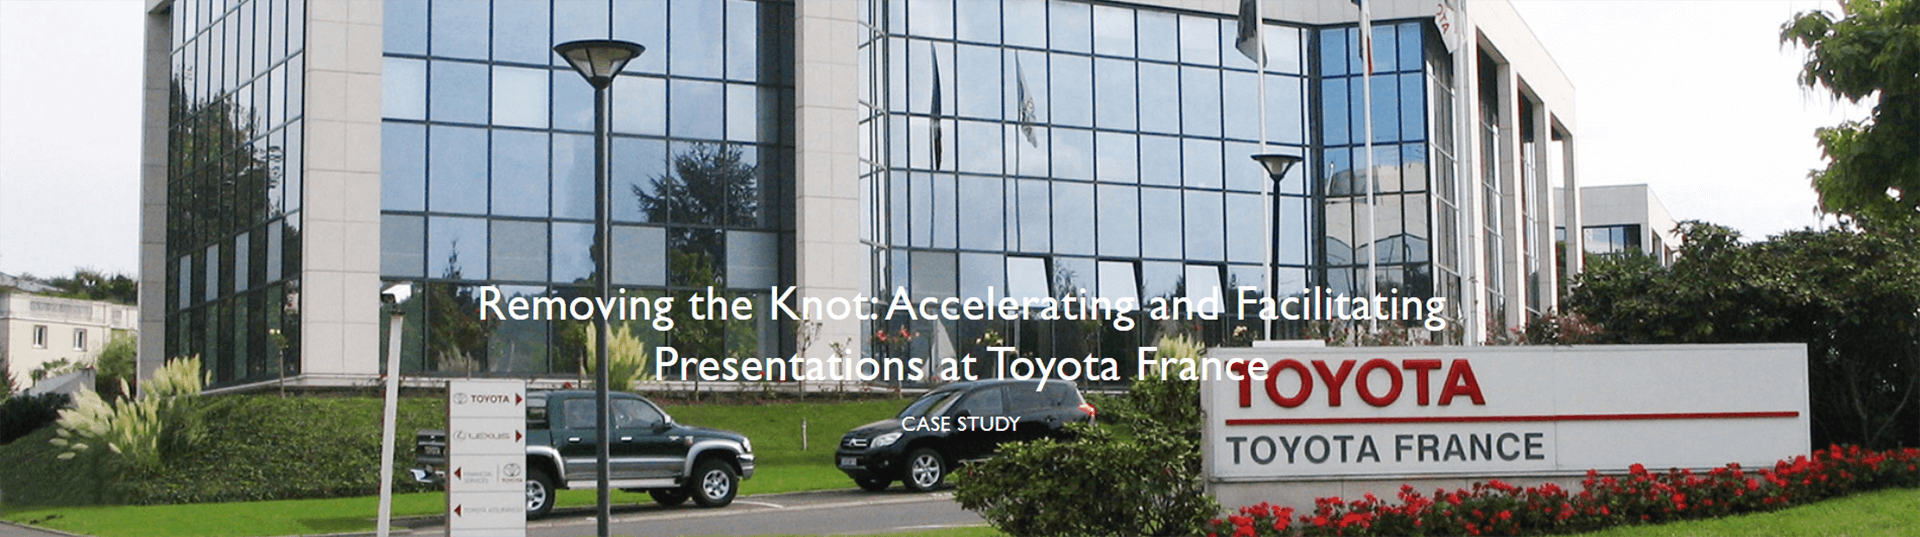 Removing the Knot: Accelerating and Facilitating Presentations at Toyota France